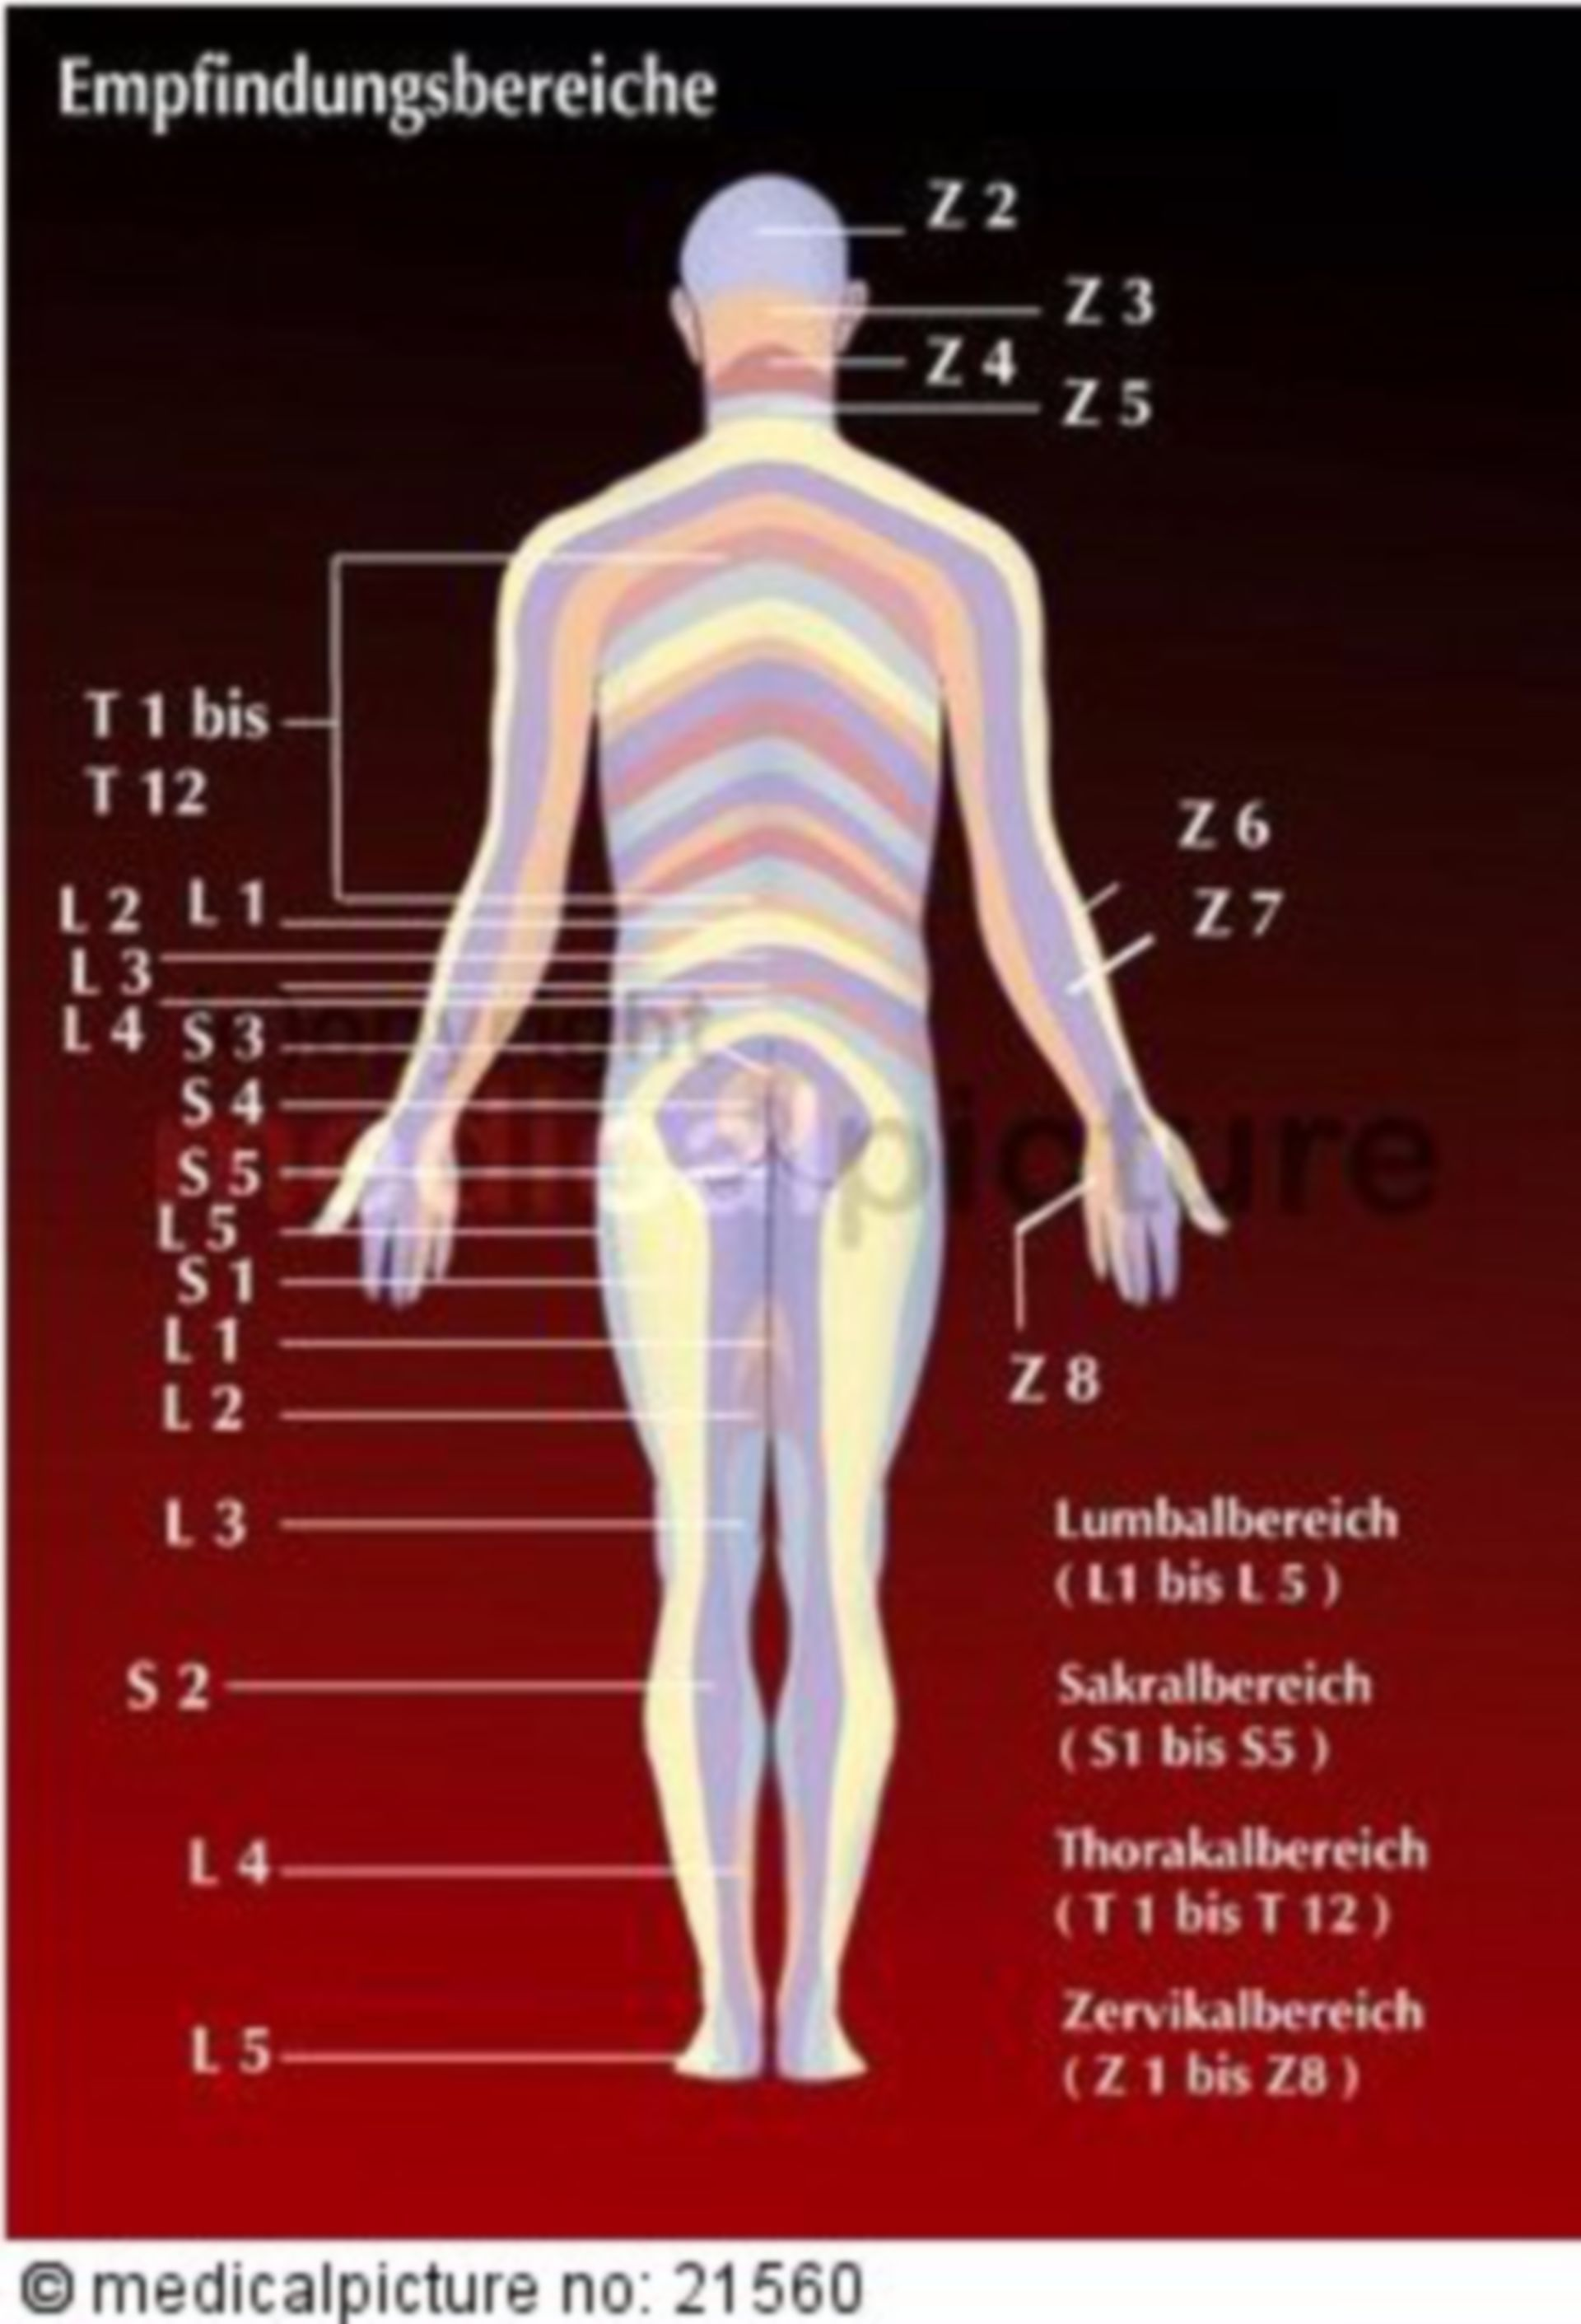 Dermatomes, sensory innervation areas of different spinal nerves